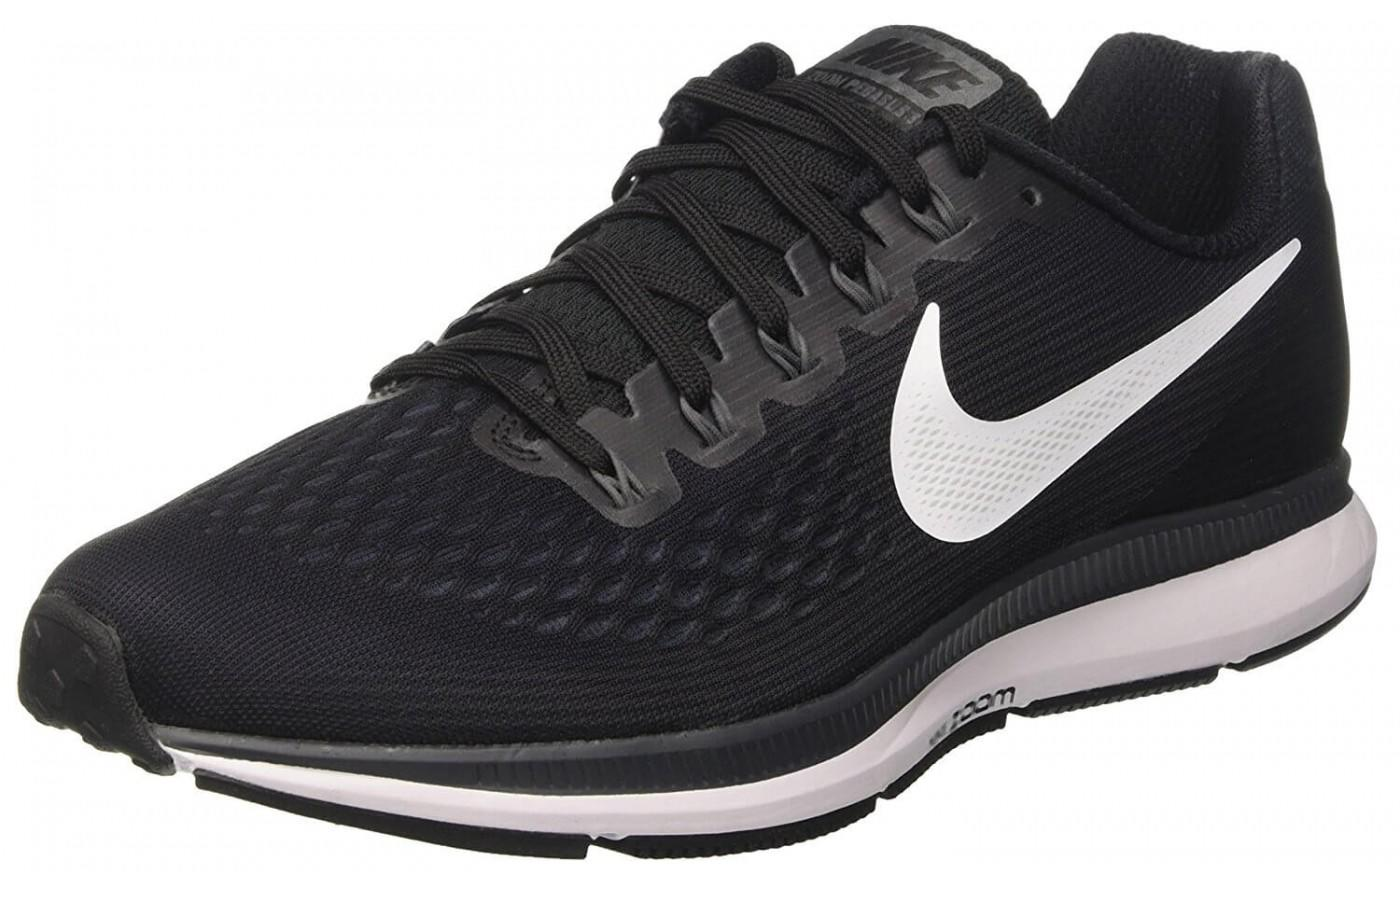 4f0e32530ff0 the upper of the Nike Air Zoom Pegasus 34 is made of breathable Flymesh ...